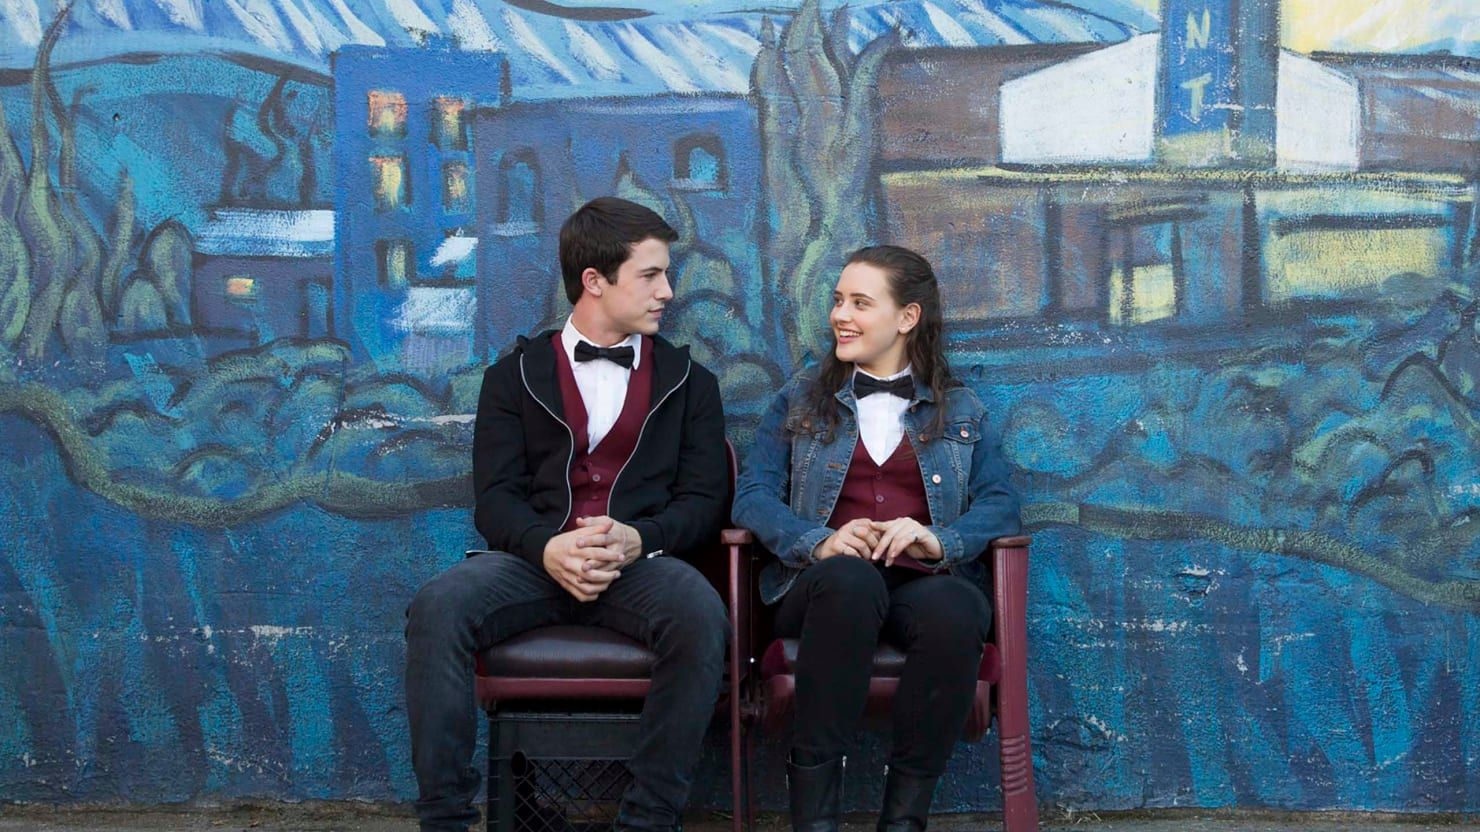 12 Best 13 Reasons Why Quotes For Tv And Book Fans Top 13rw Lines